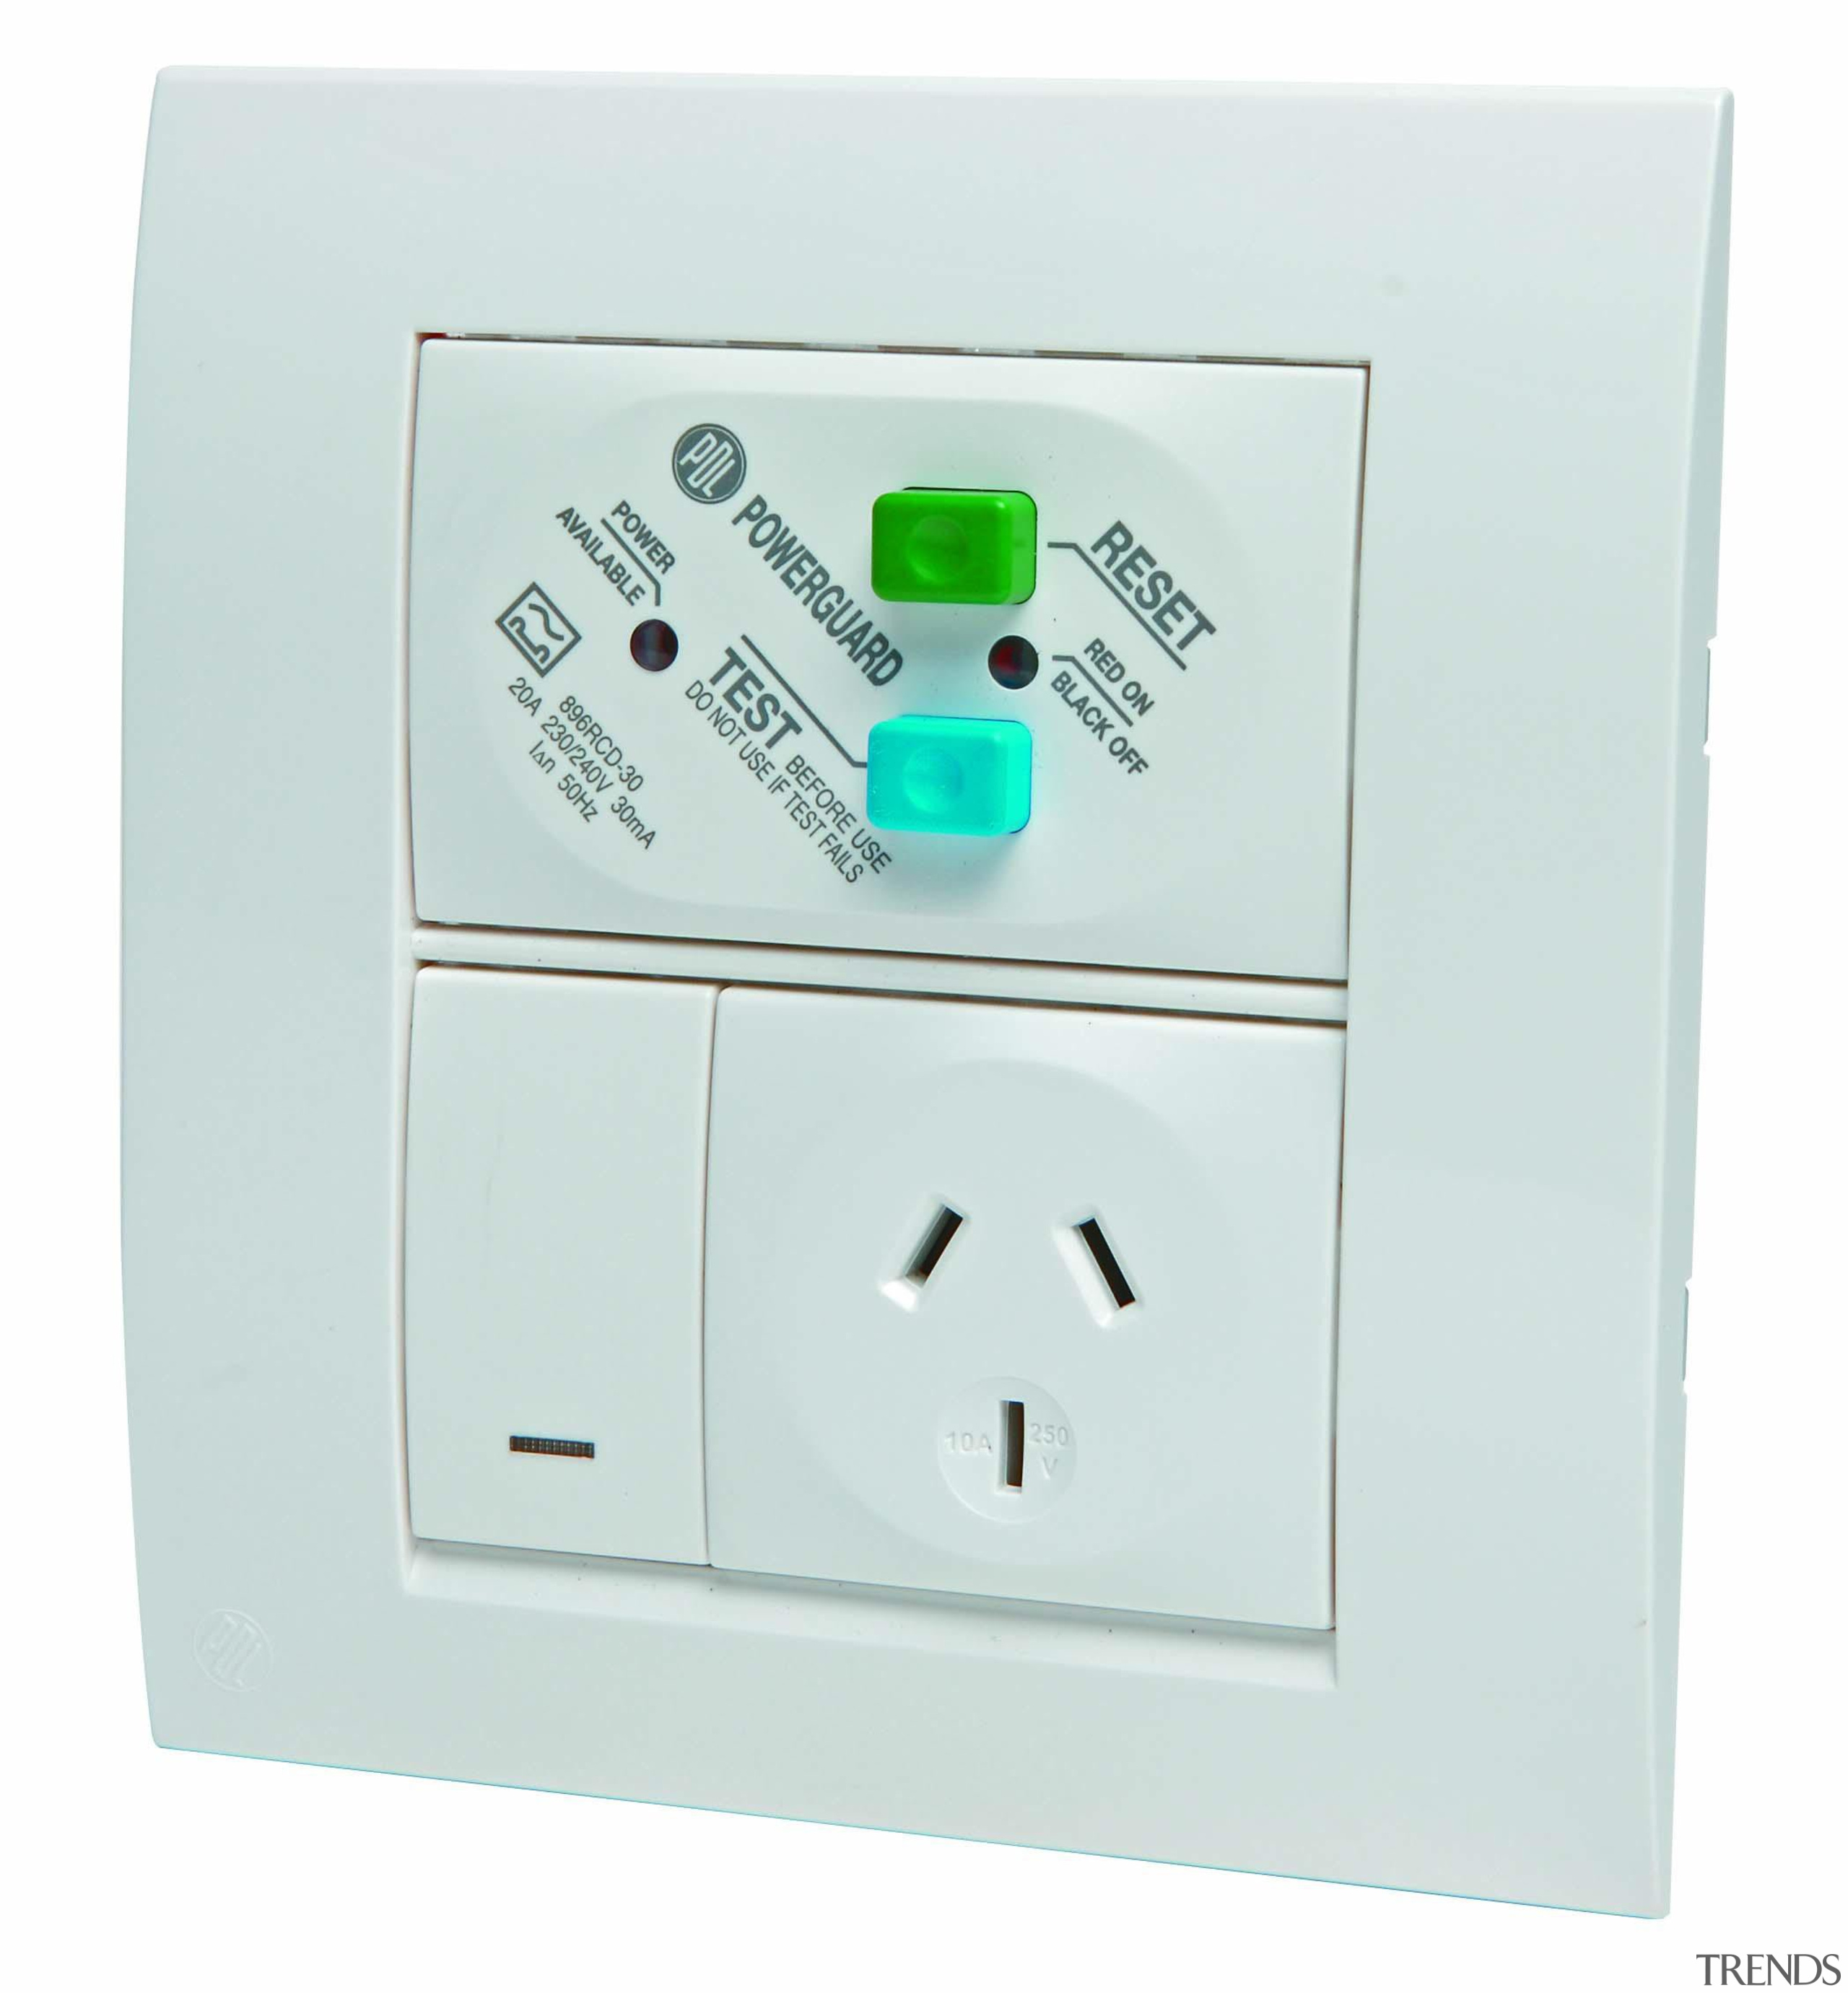 Modena single socket with RCD protection - White ac power plugs and socket outlets, switch, technology, white